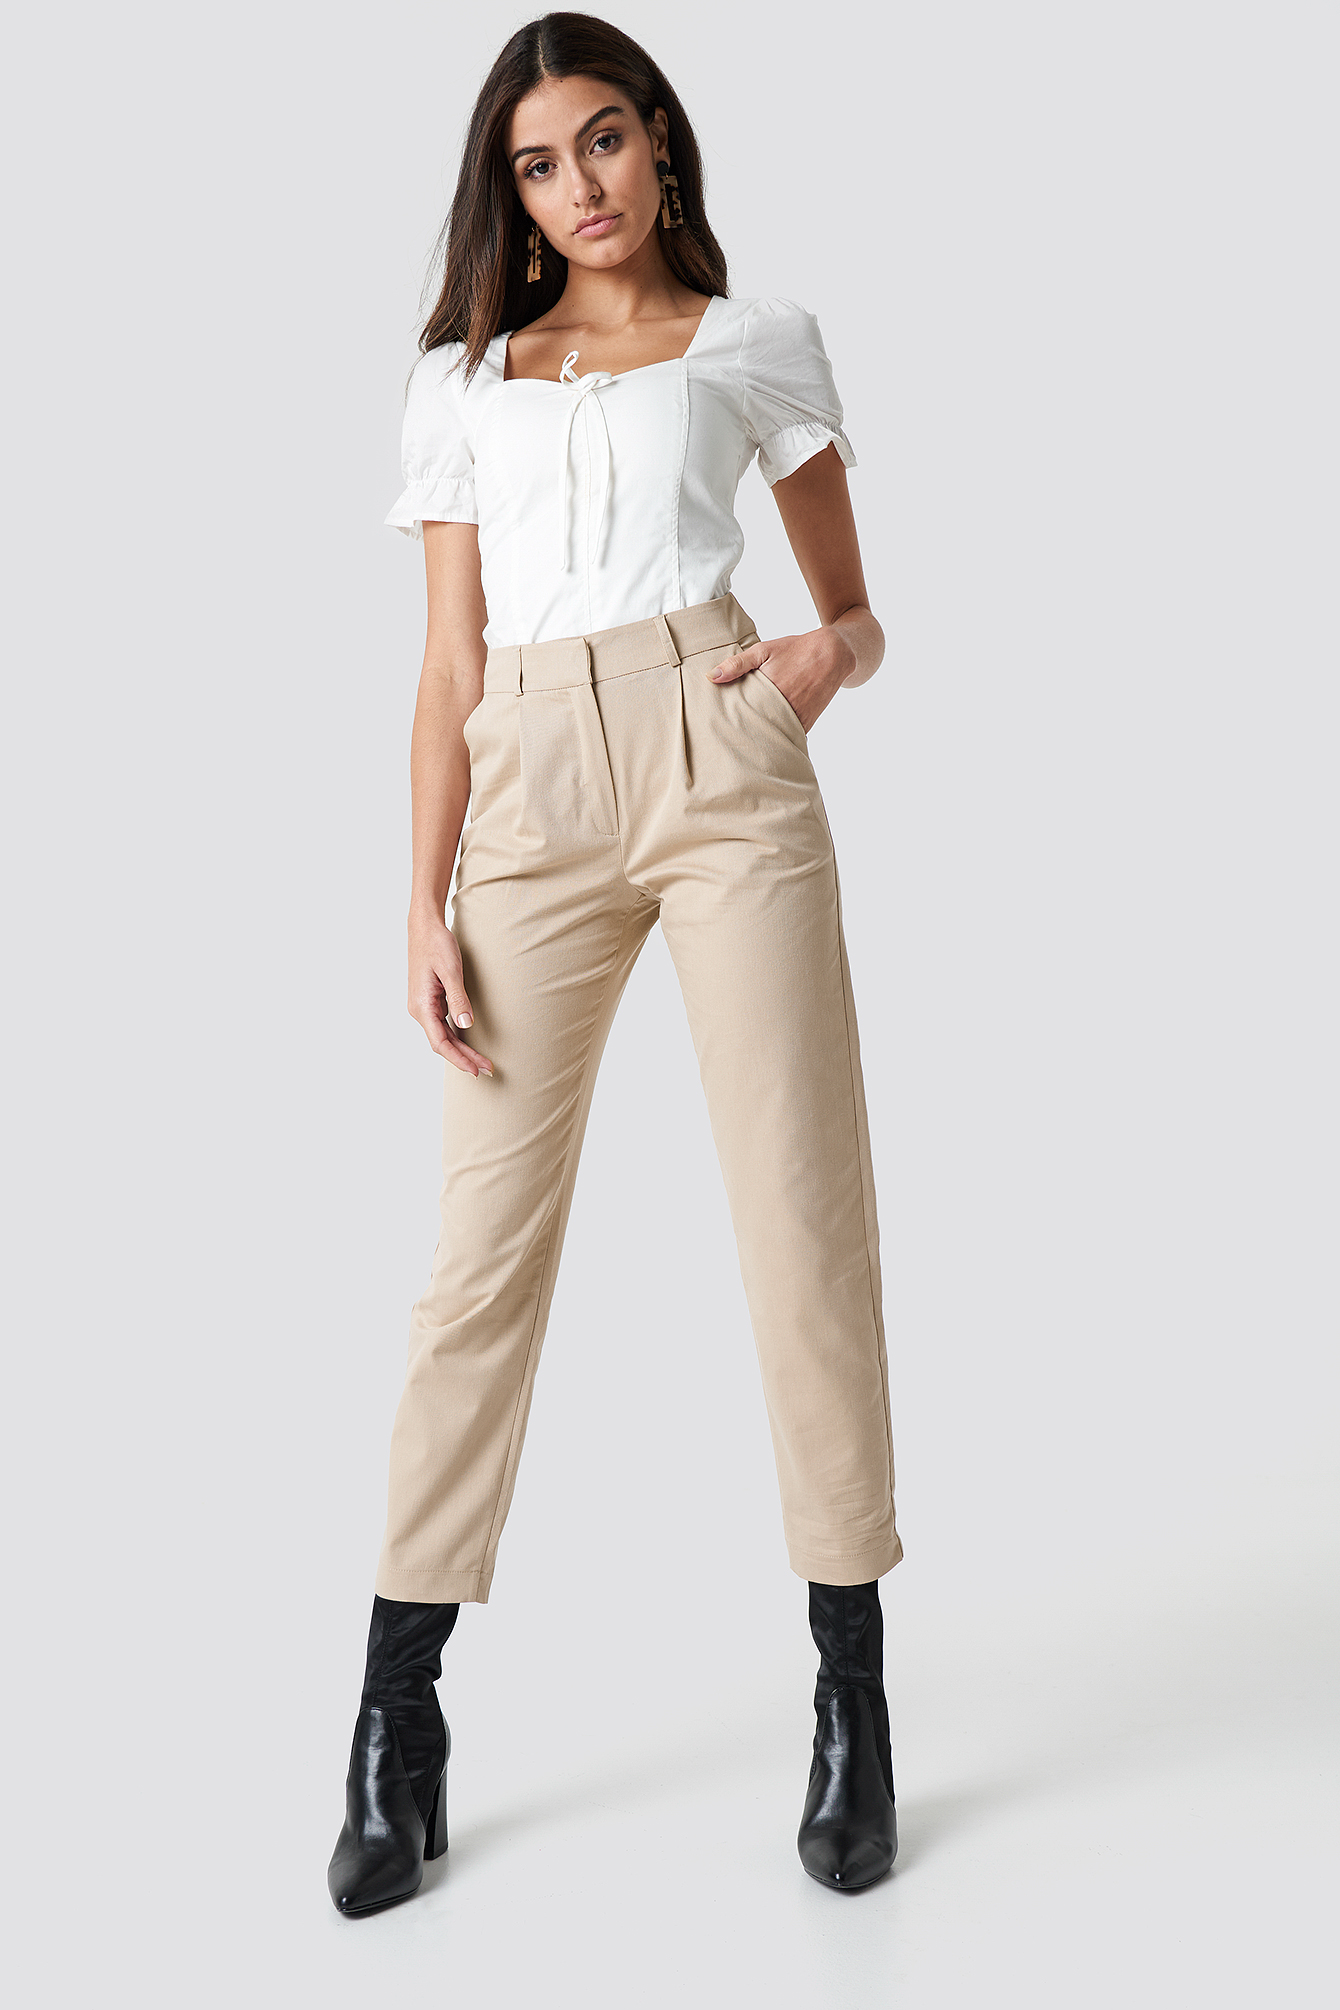 Cotton Blend Suit Pants NA-KD.COM